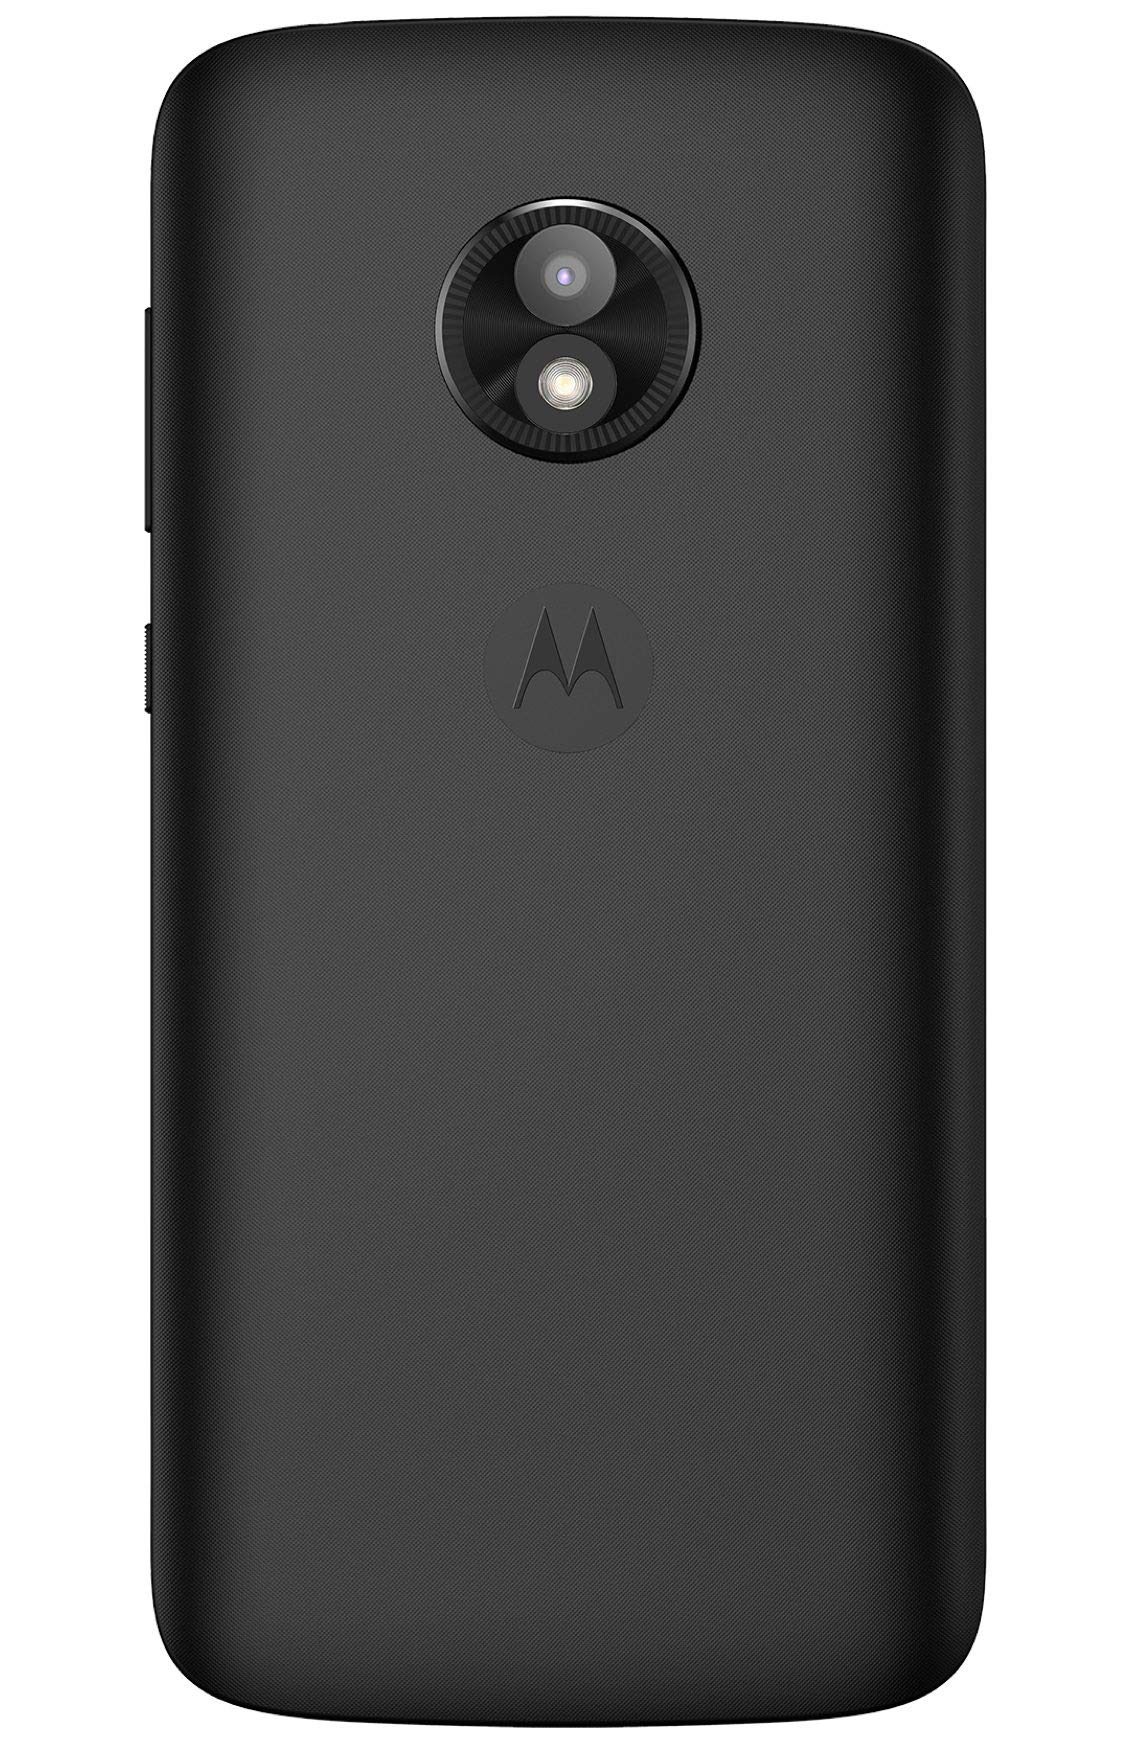 Motorola Moto E5 Play XT1920-19 Factory Unlocked 16GB Dual SIM 1GB RAM 4G LTE 5.3'' LCD Display 8MP International Version (Black) by Motorola (Image #4)